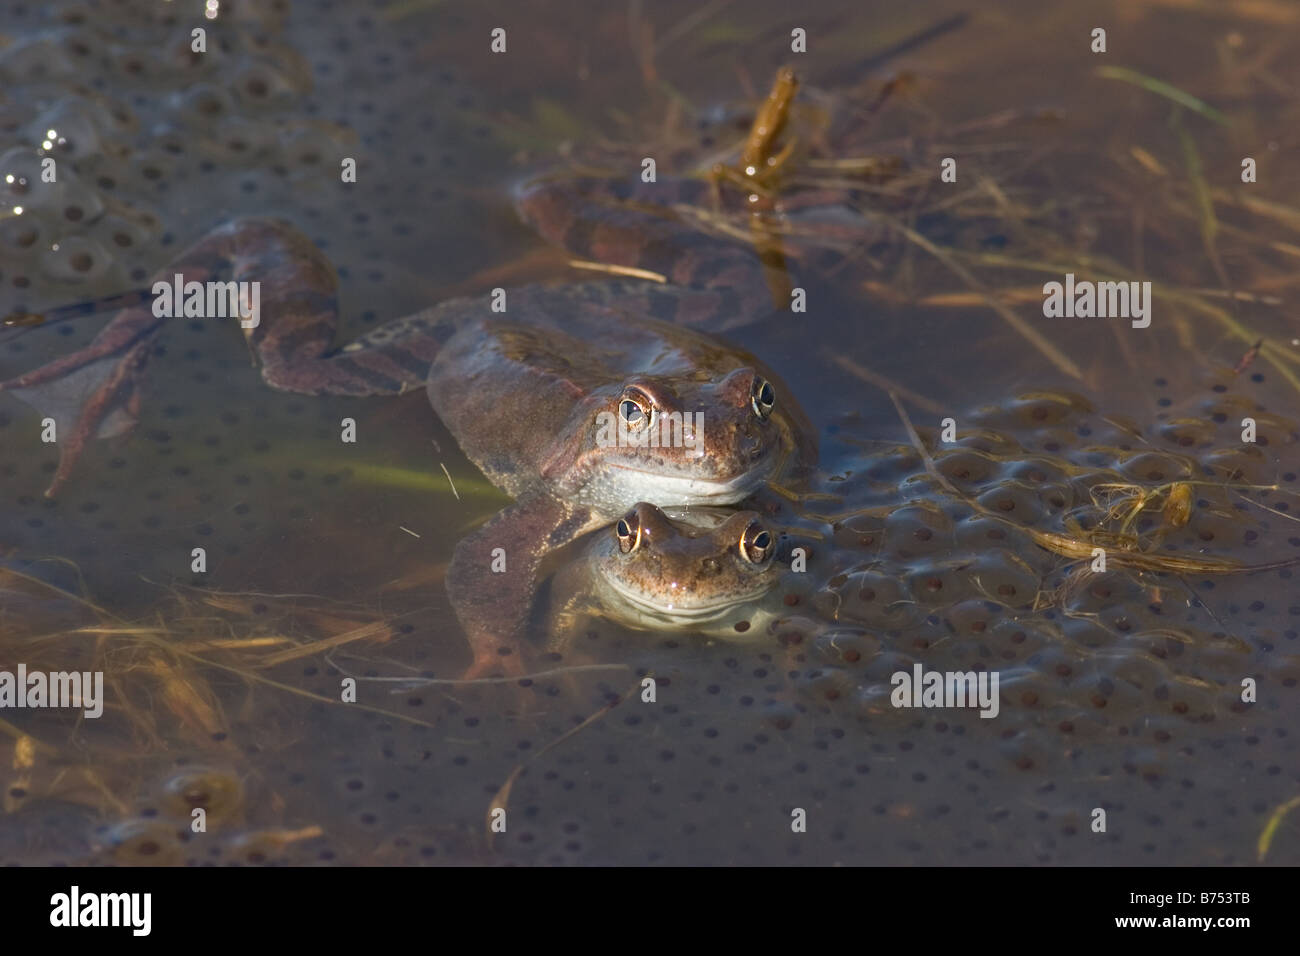 Common Frogs, Rana temporaria pair mating with eggs - Stock Image